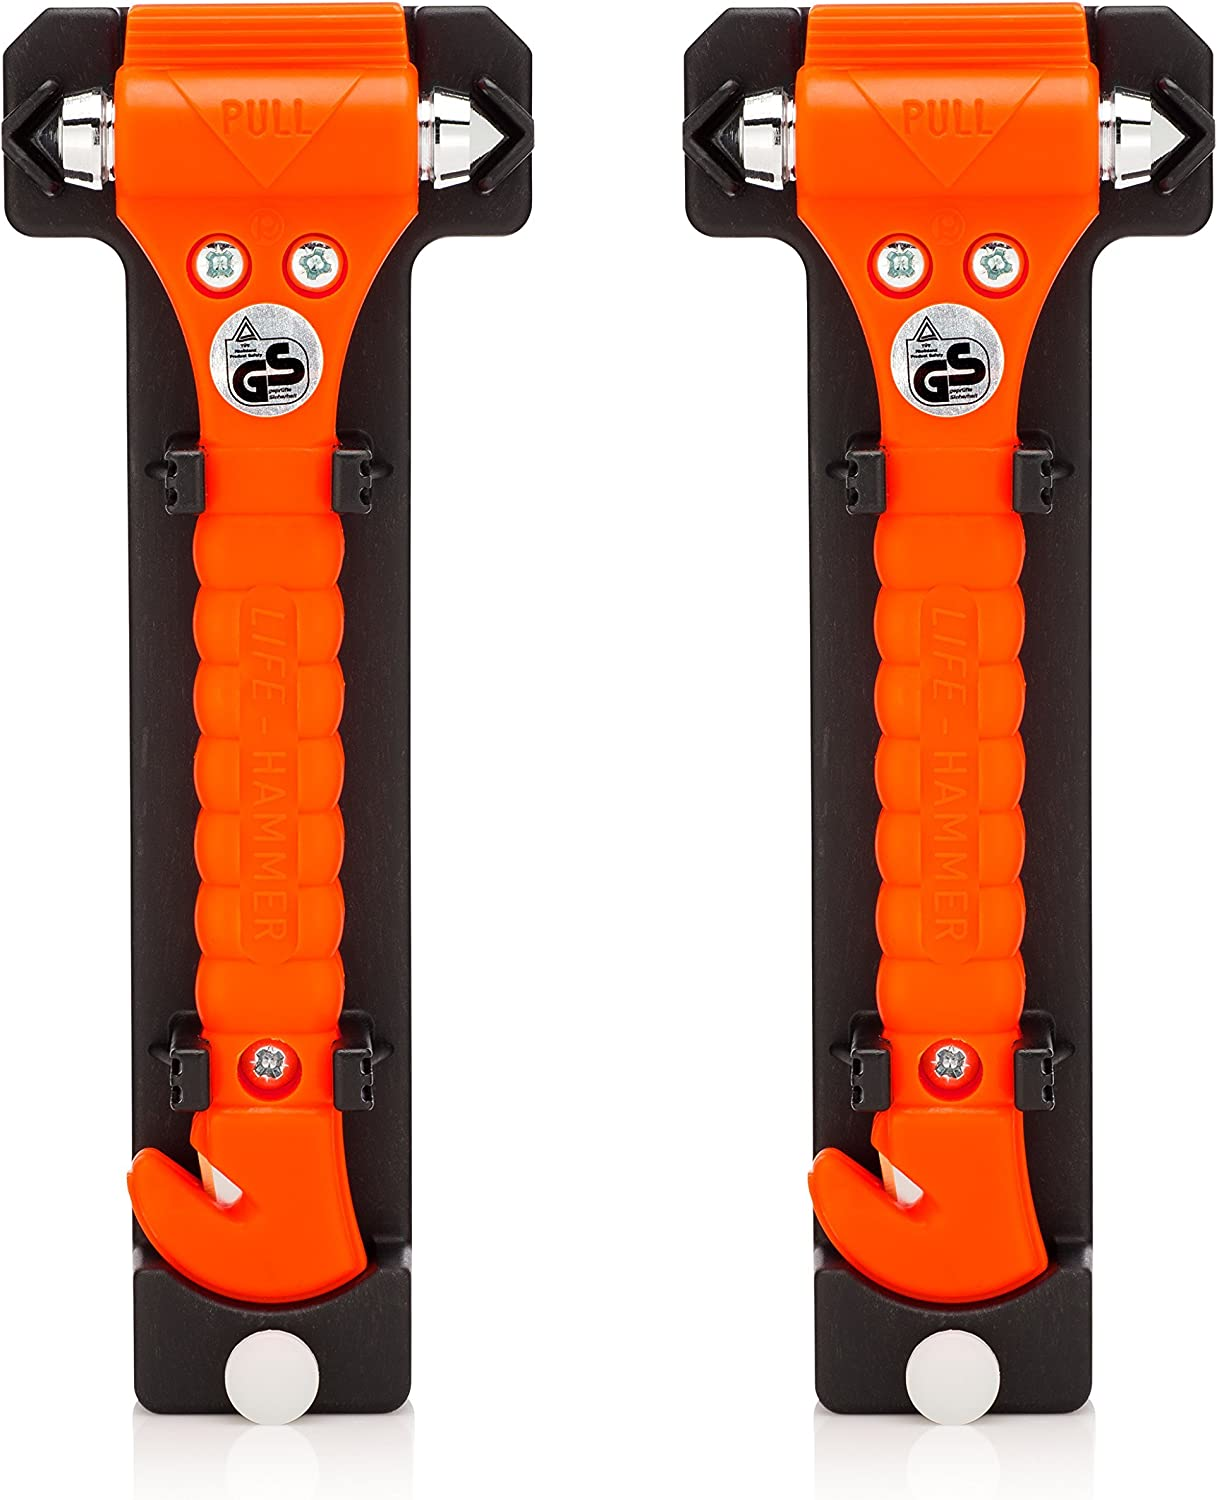 Lifehammer Brand Car Safety Hammer, The Original Emergency Escape and Rescue Tool with Seatbelt Cutter, Made in The Netherlands, Orange (2-Pack): Automotive